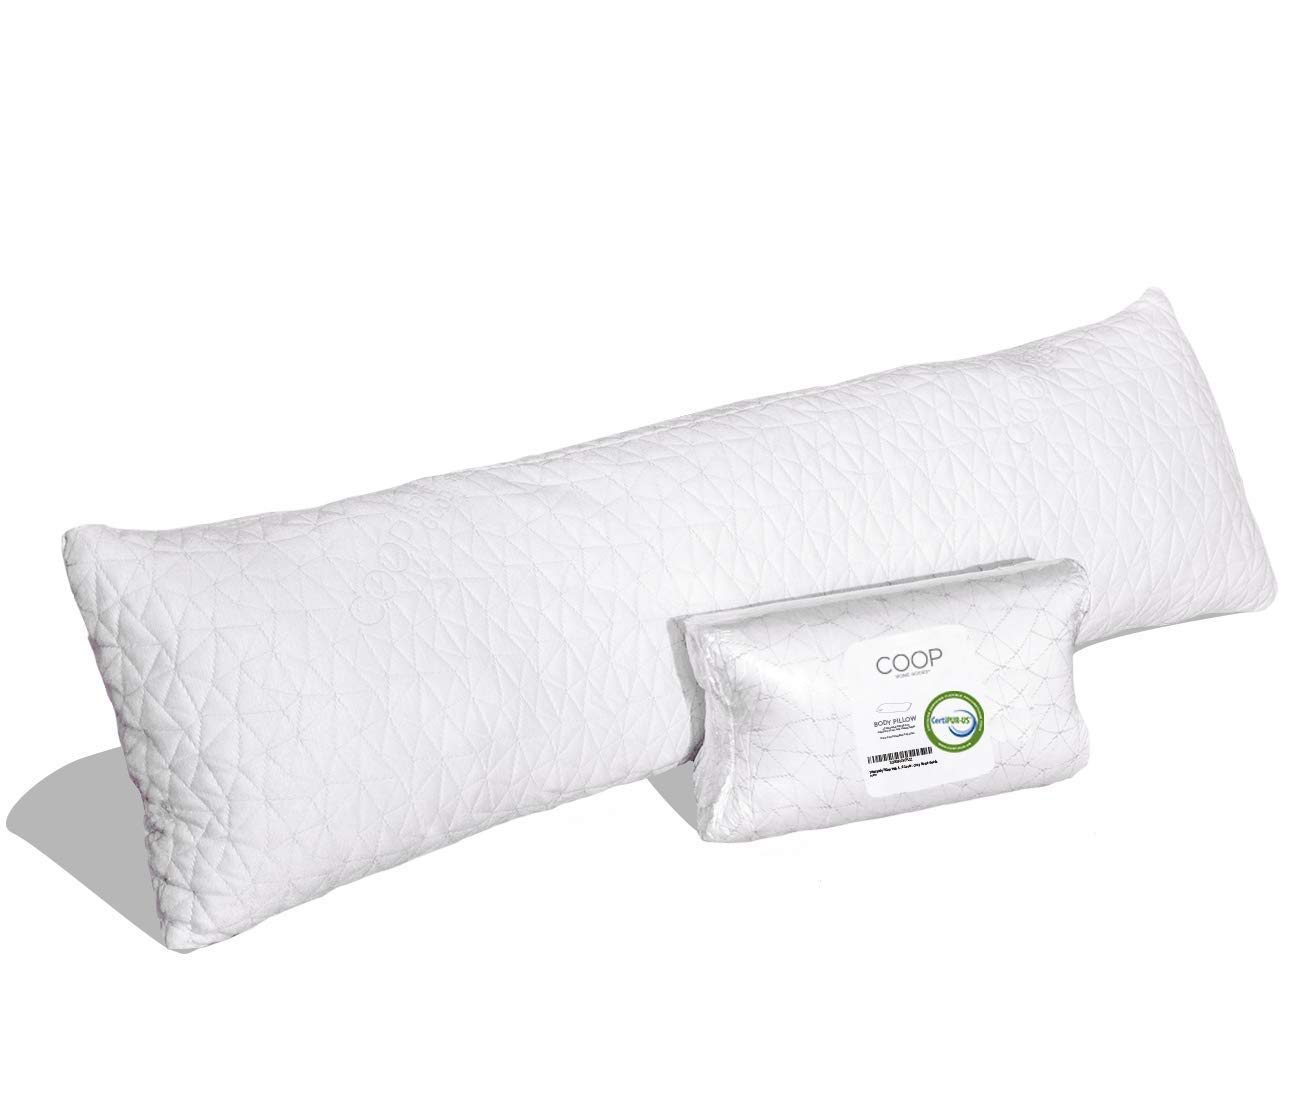 Coop Home Goods, Shredded Memory Foam Body Pillow